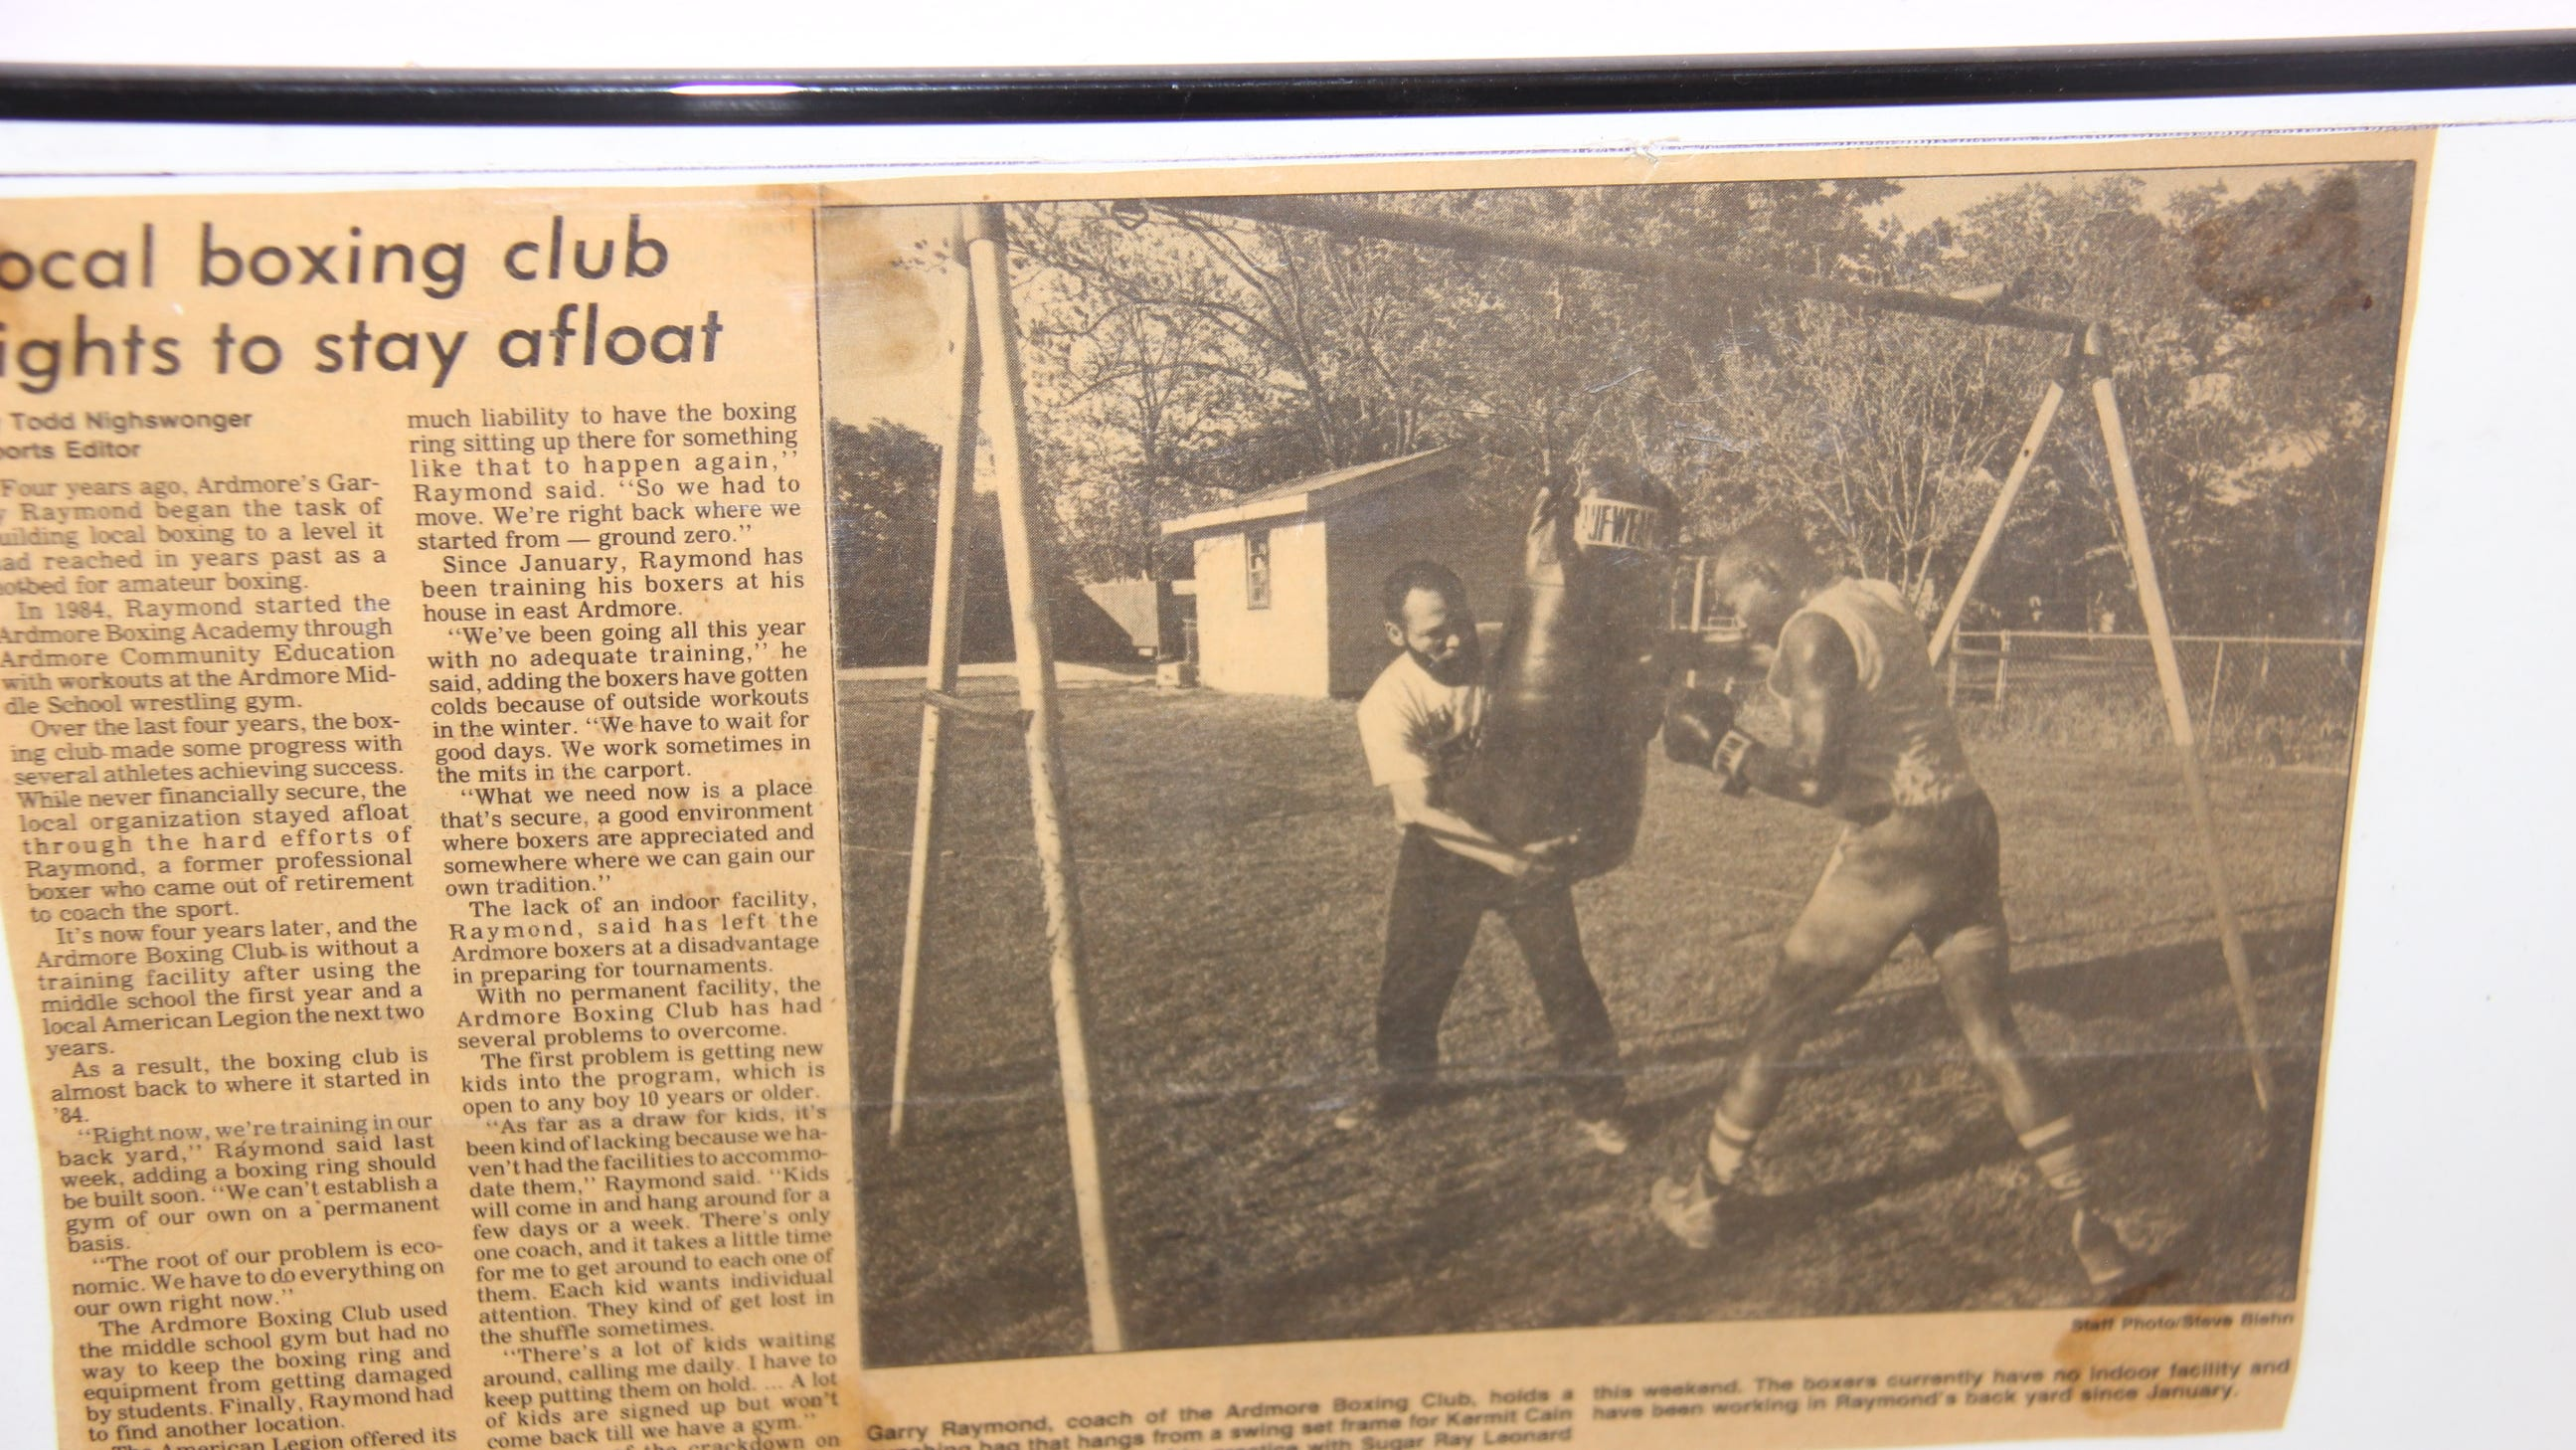 Late 1980s Press clippings from The Daily Ardmoreite show Garry Raymond training Ardmore boxer Kerrmit Cain. In 1987, Cain became first Oklahoma Golden Gloves boxer to make a national tournament since 1952.